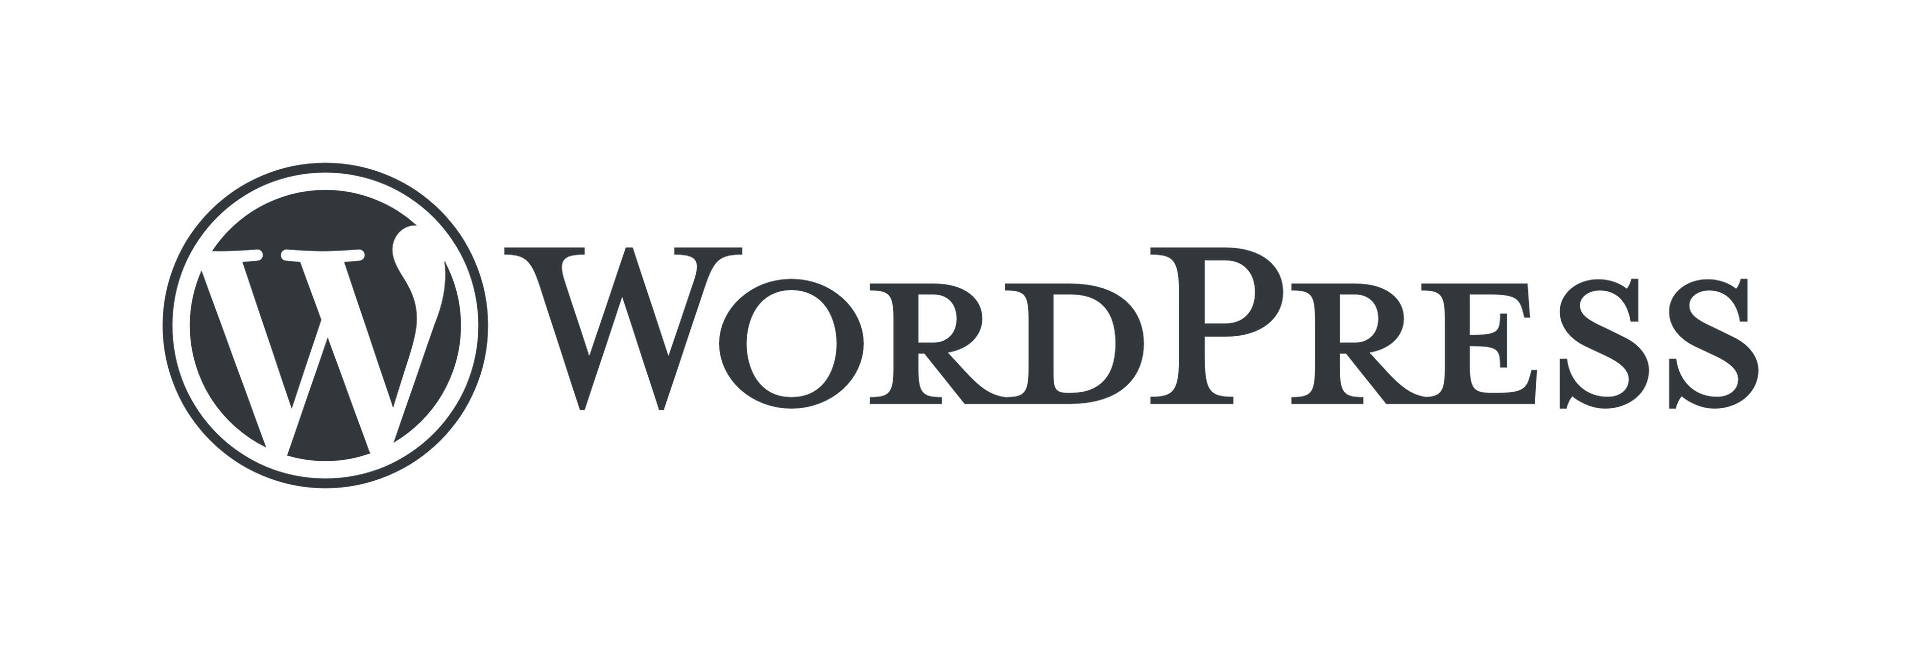 wordpress-logo-gris